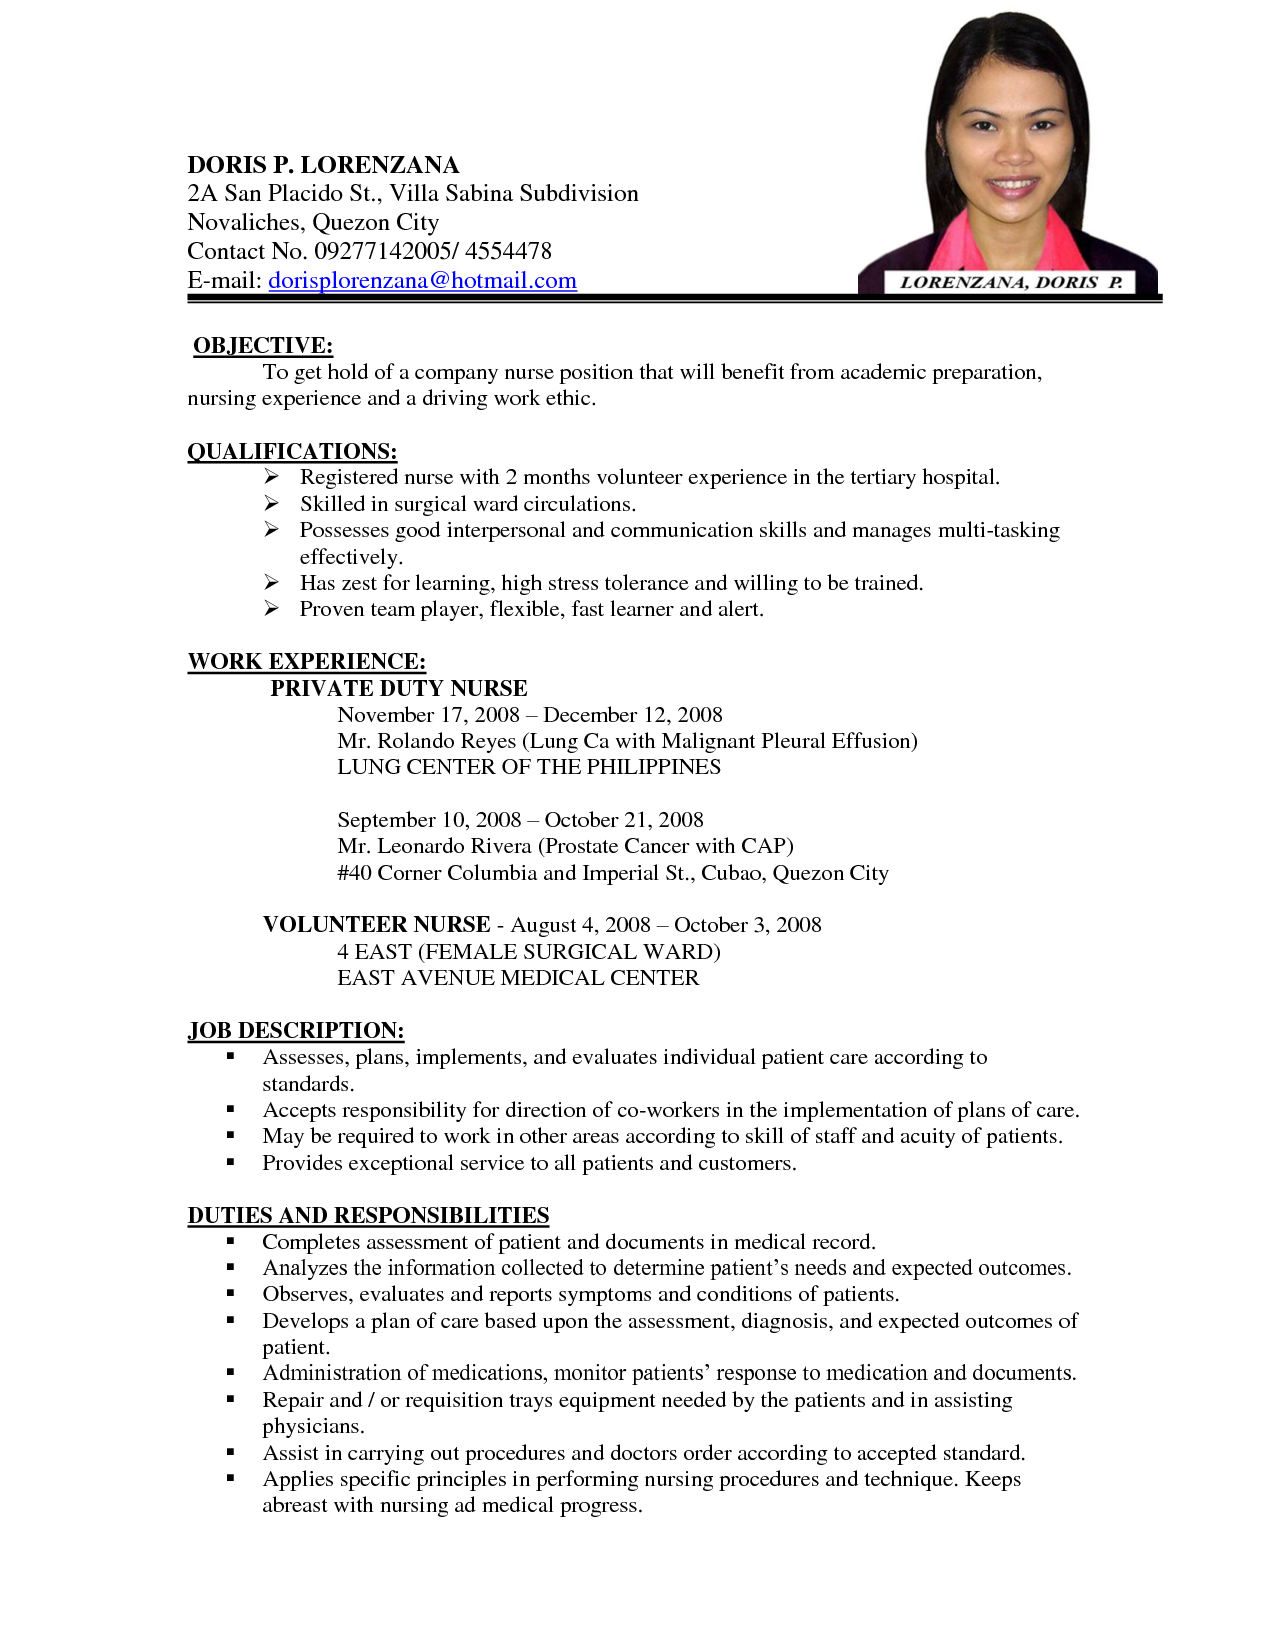 Nursing curriculum vitae examples google search nursing nursing curriculum vitae examples google search nursing resume template resume template free sample maxwellsz